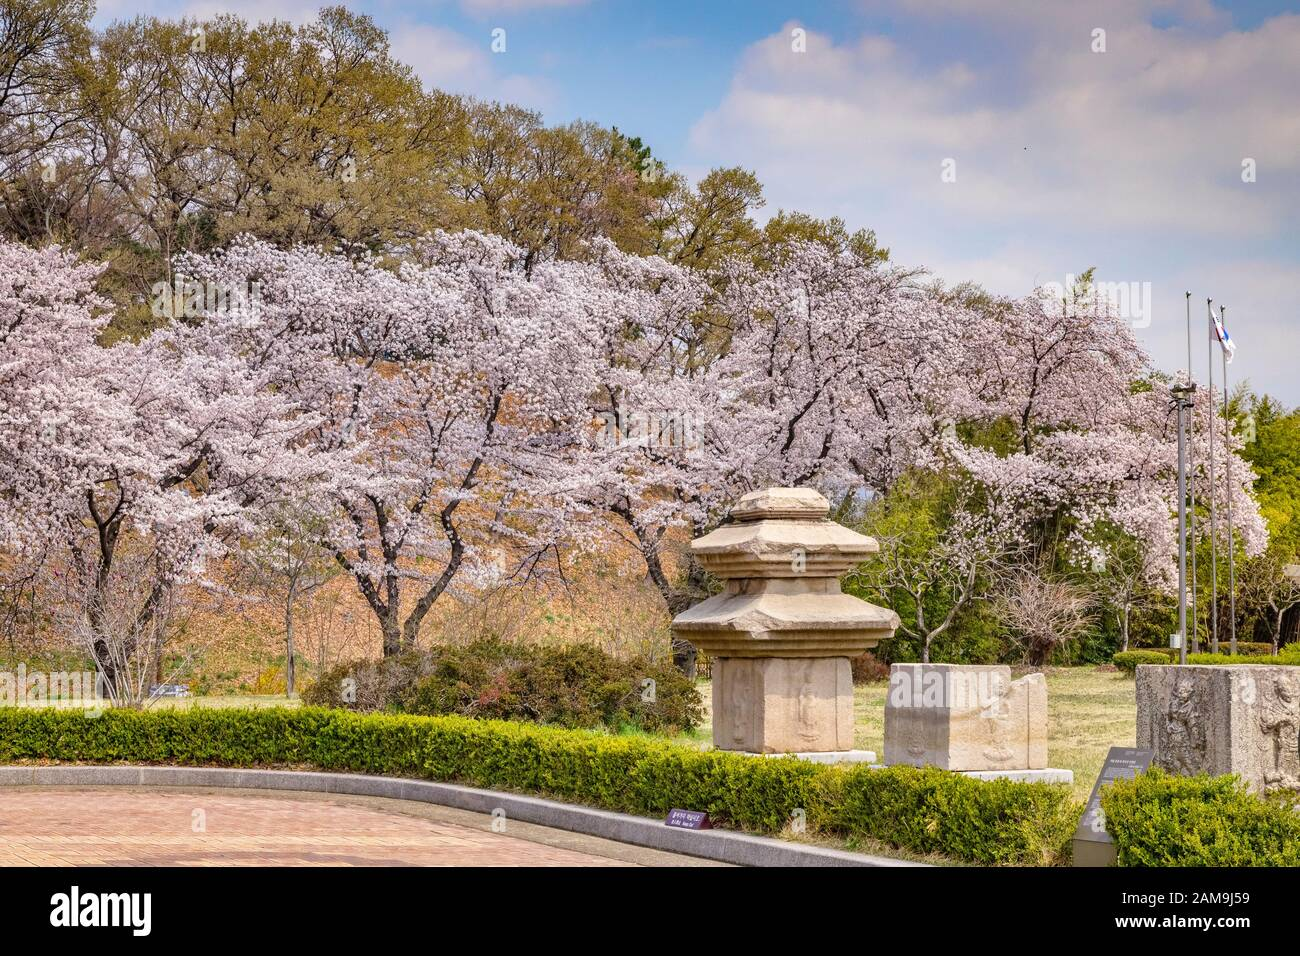 31 March 2019: GyeongJu, South Korea - Cherry blossom and carved blocks of stone in the grounds of Gyeongju National Museum. Stock Photo